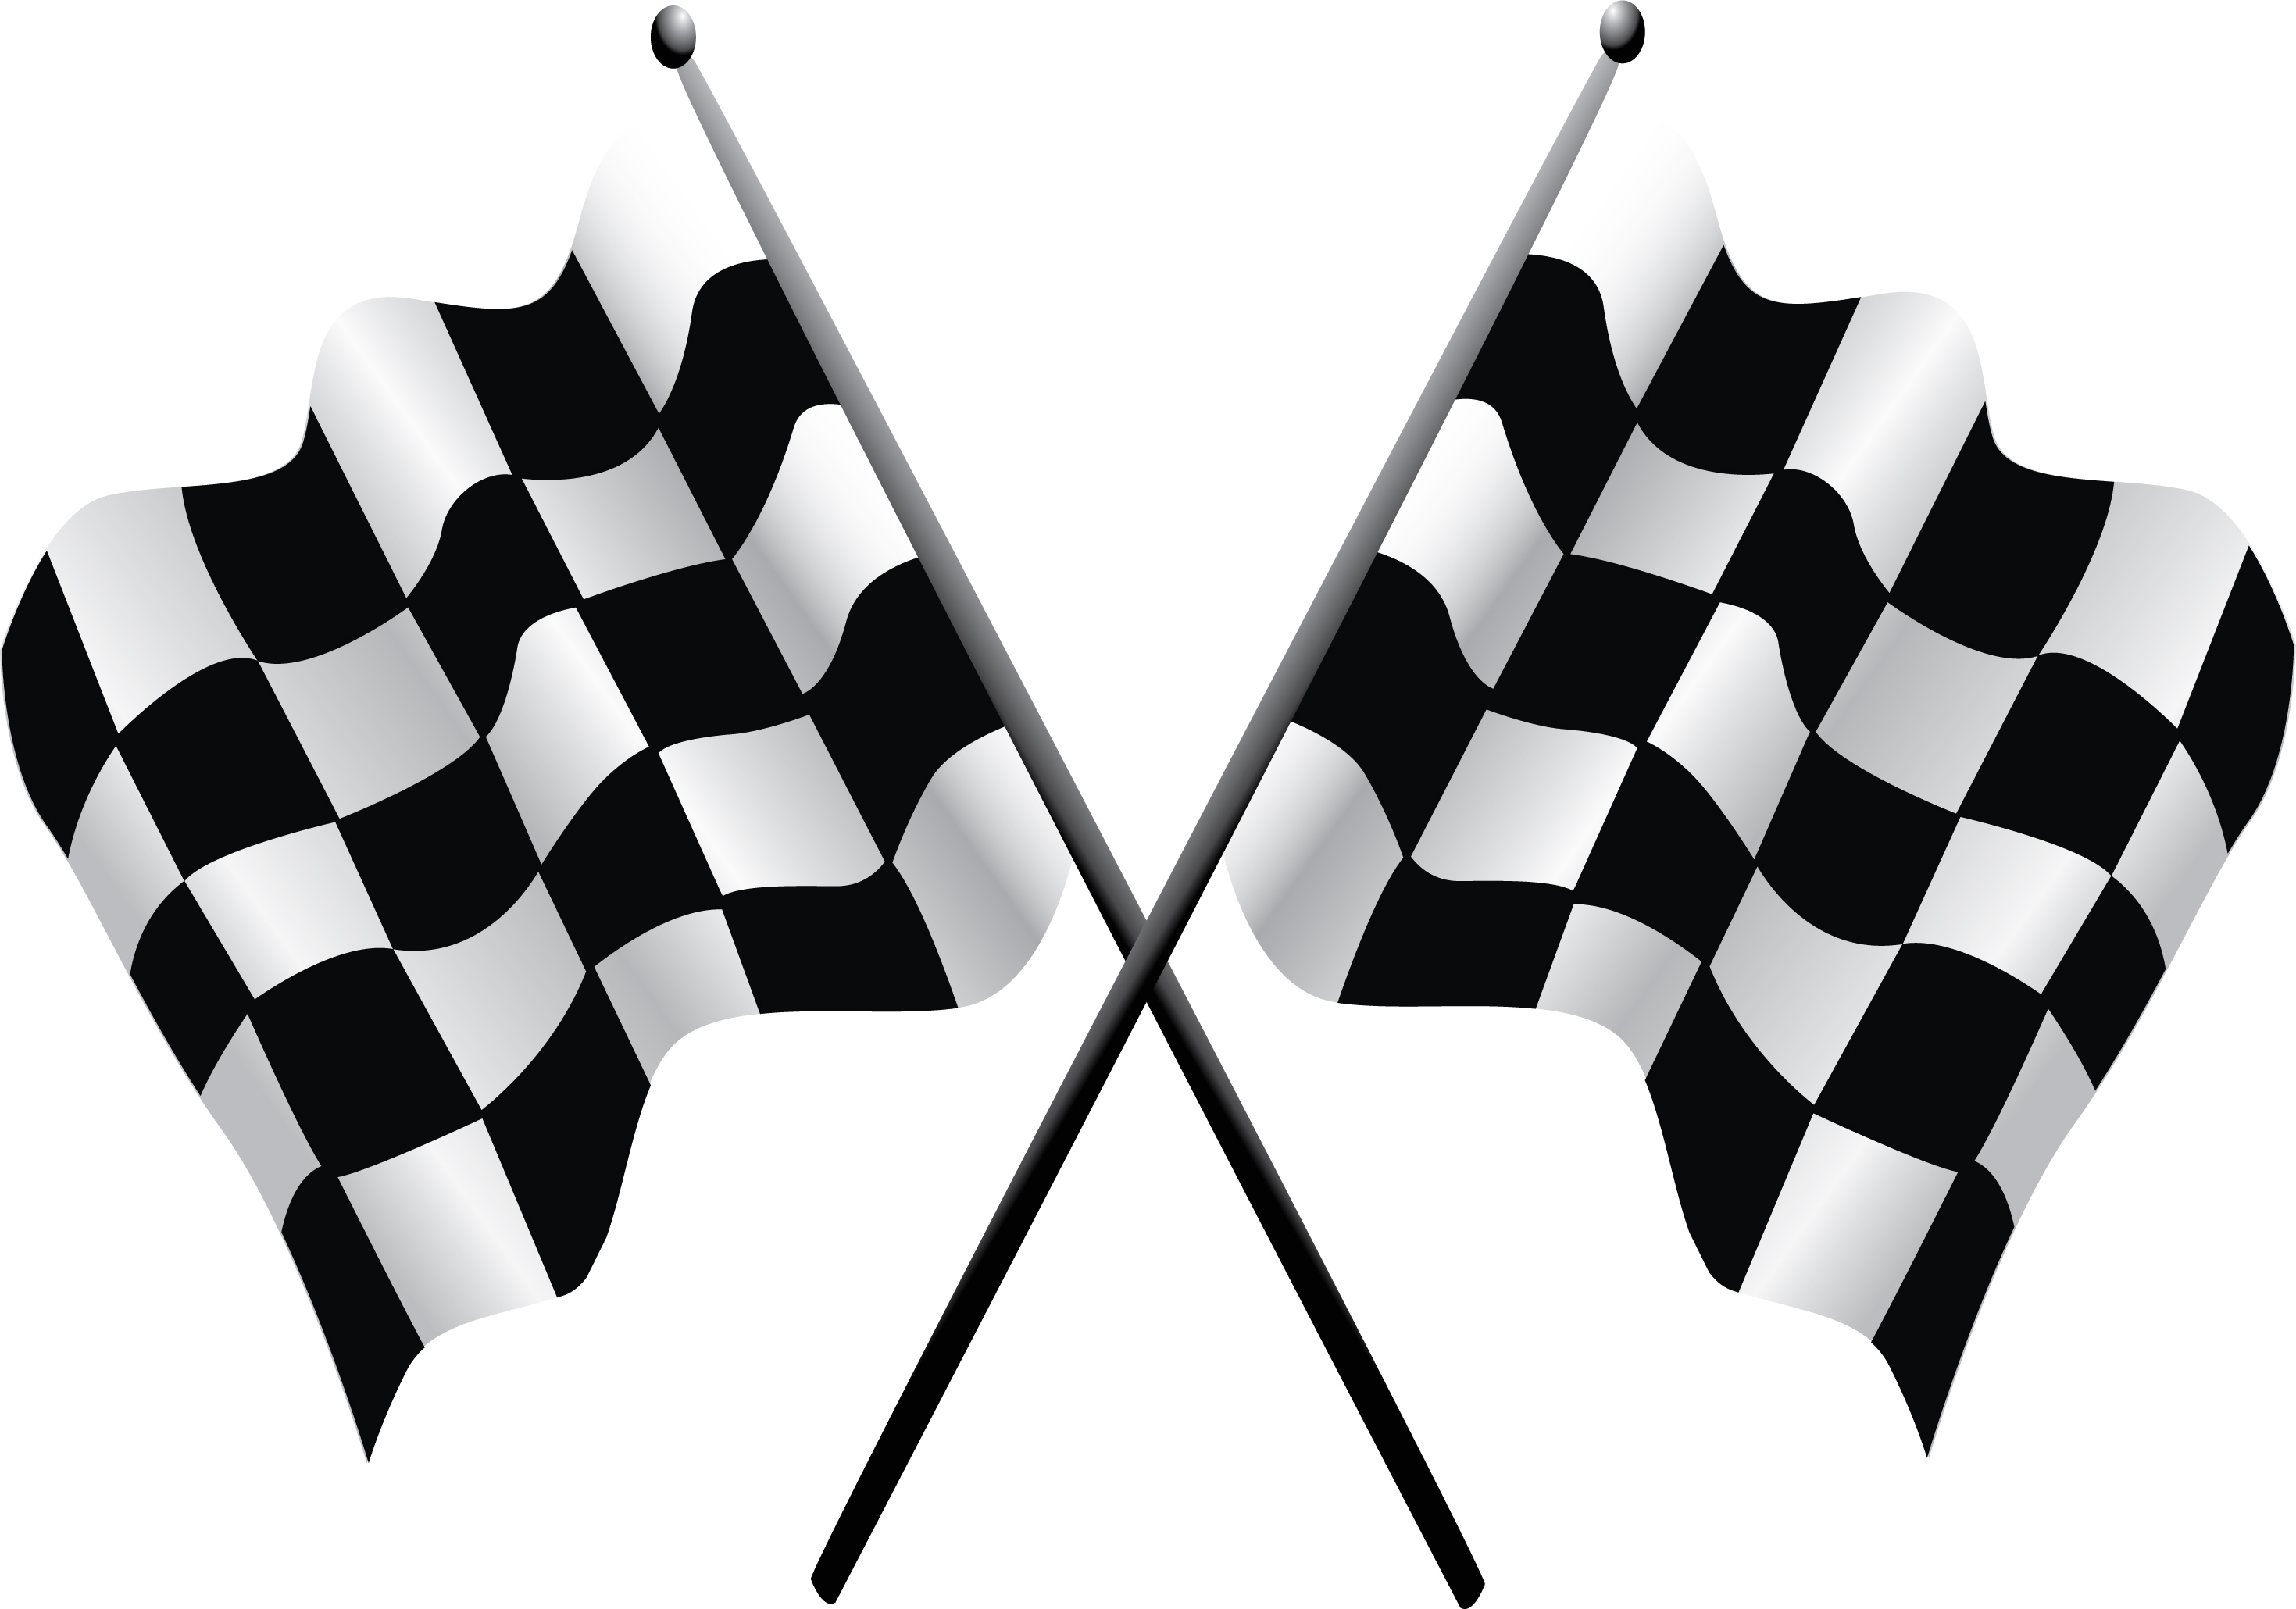 Chequered Flag.